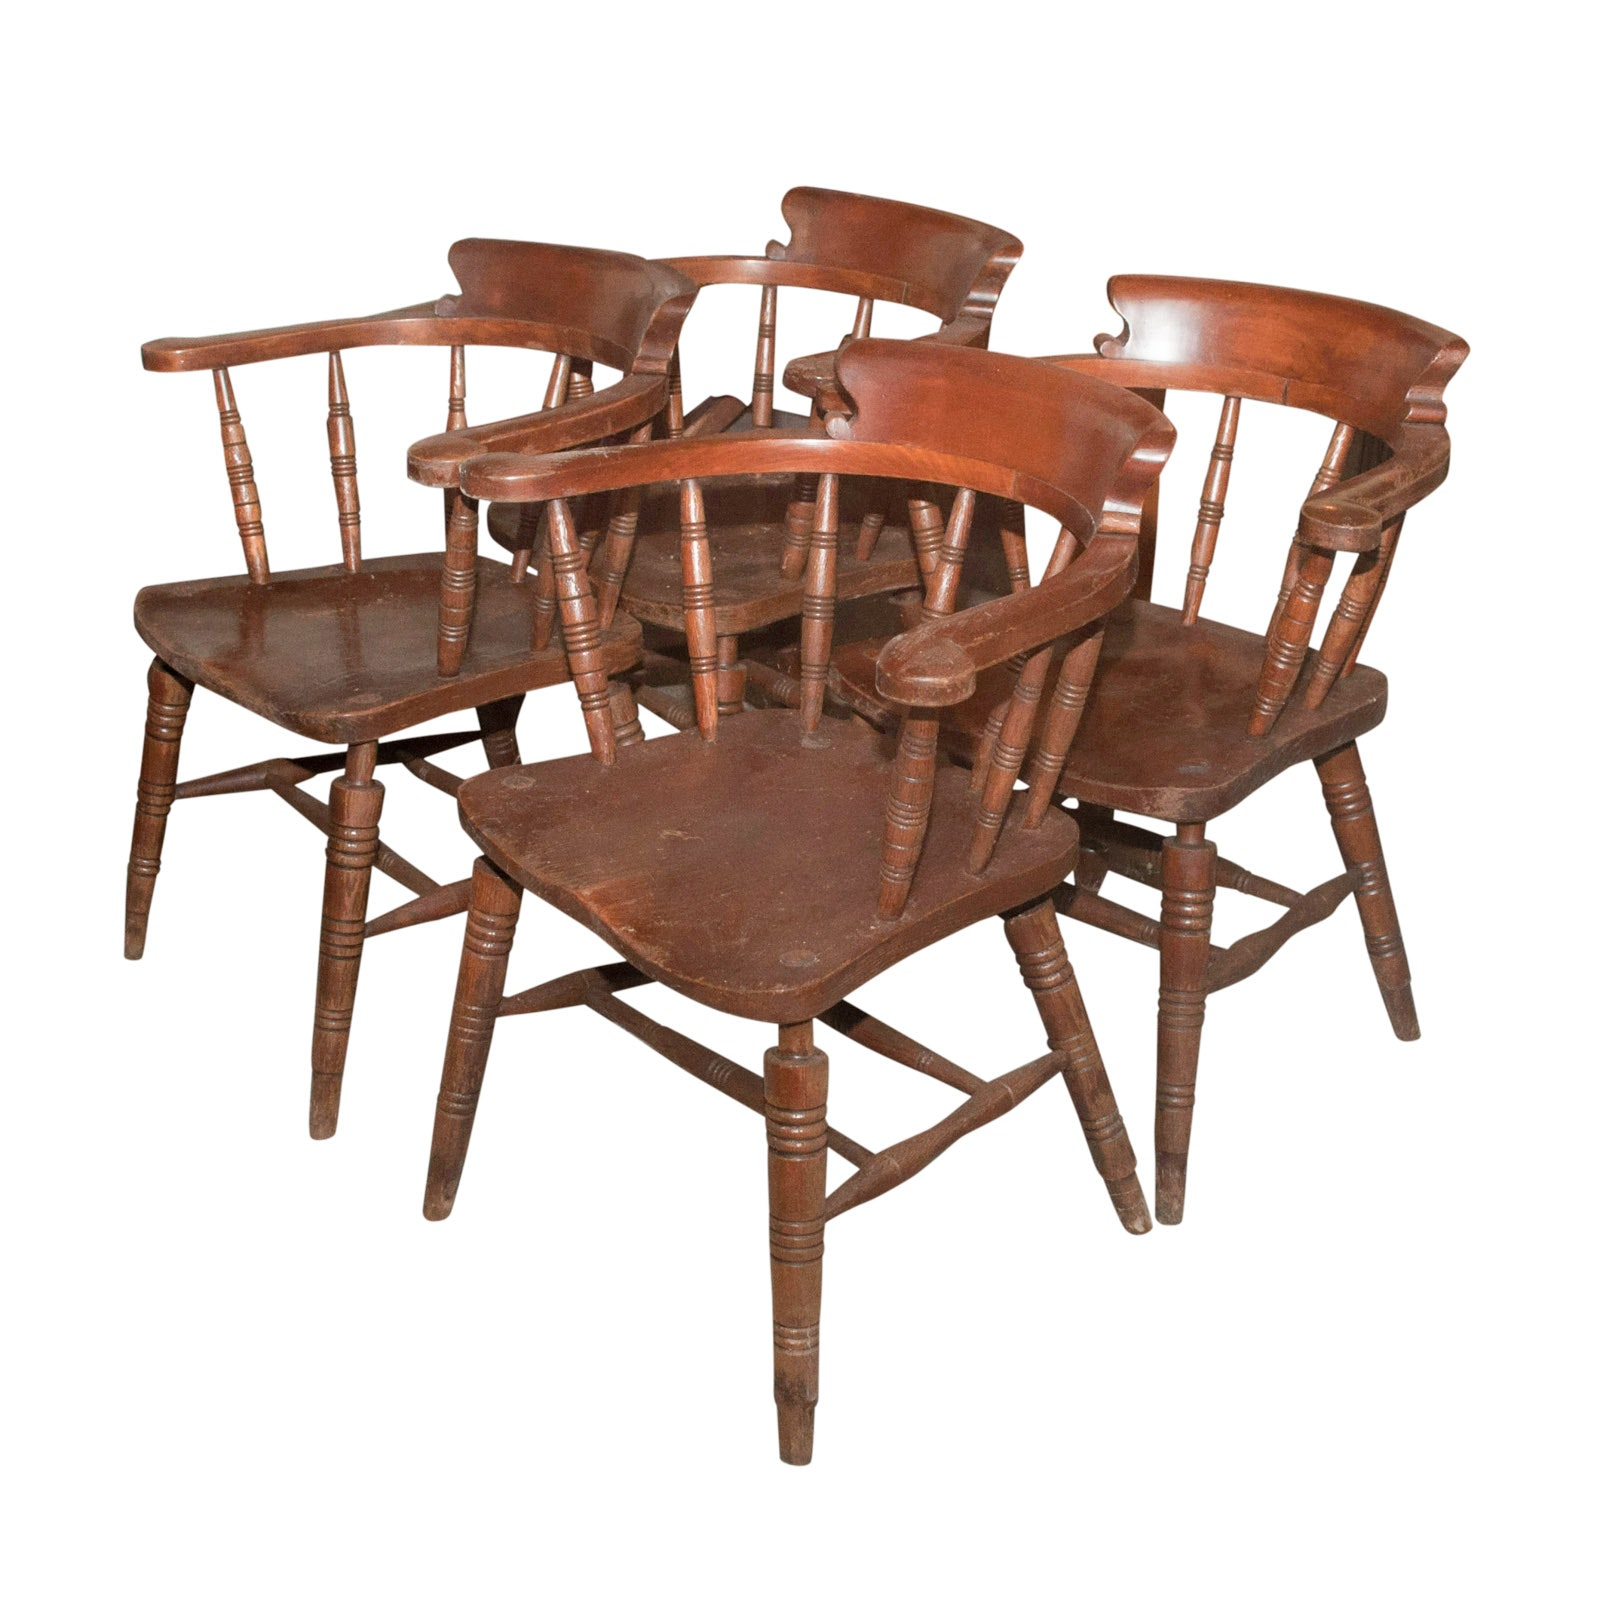 Four Maple Captain's Chairs, 20th Century